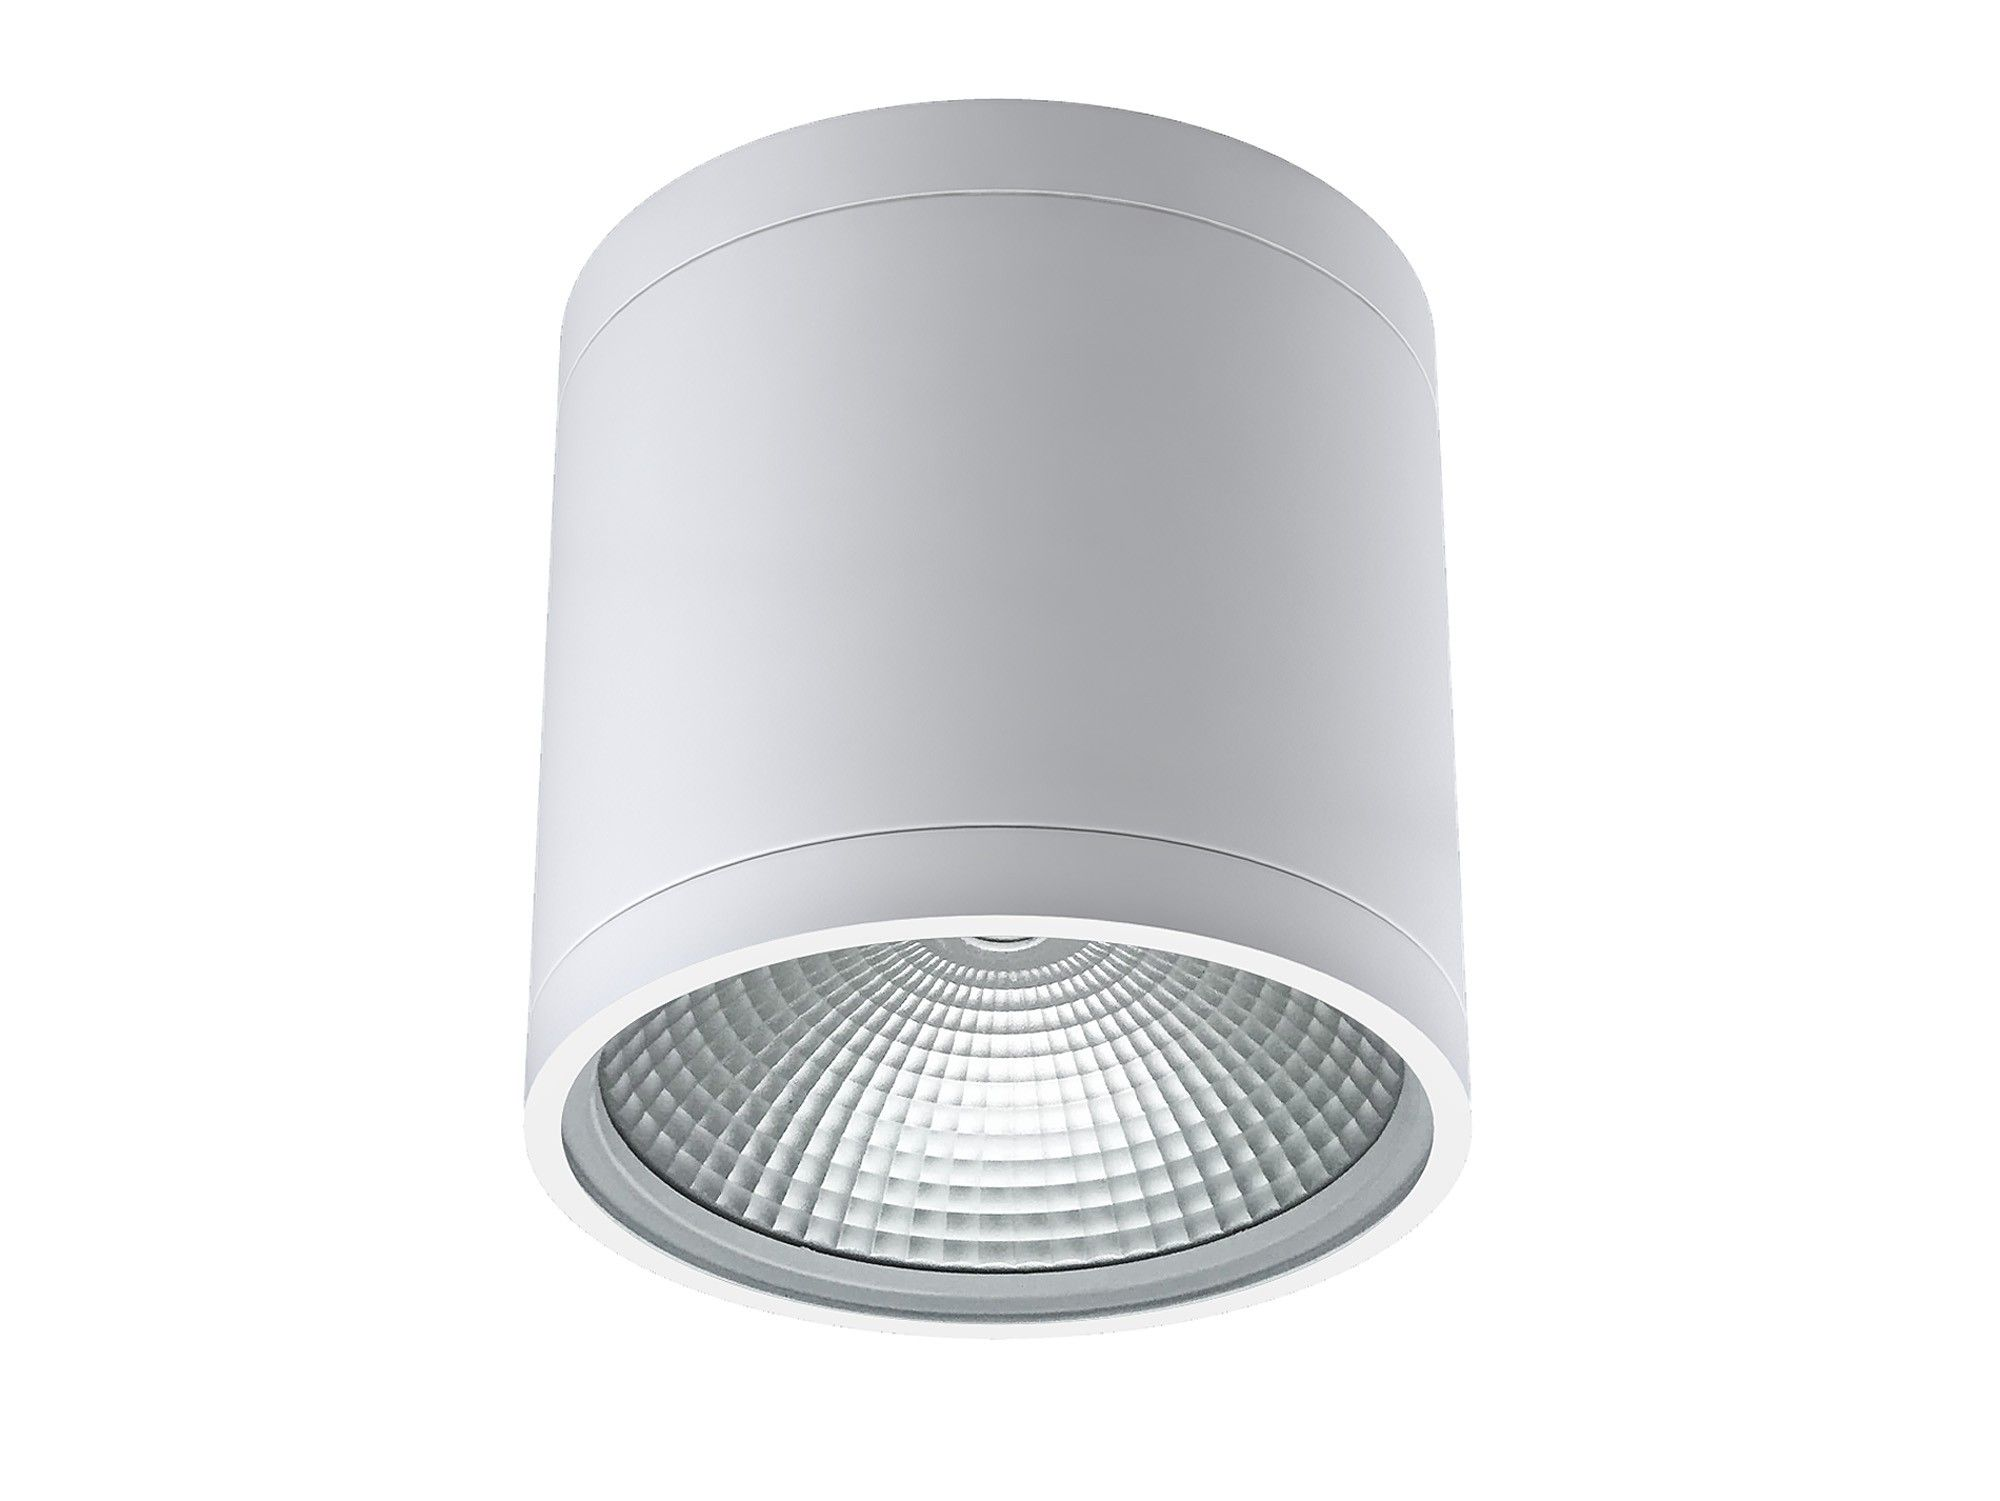 Alcon lighting 11236 dir pavo architectural led 6 inch cylinder alcon lighting 11236 dir pavo architectural led 6 inch cylinder surface ceiling mount direct down light fixture aloadofball Image collections